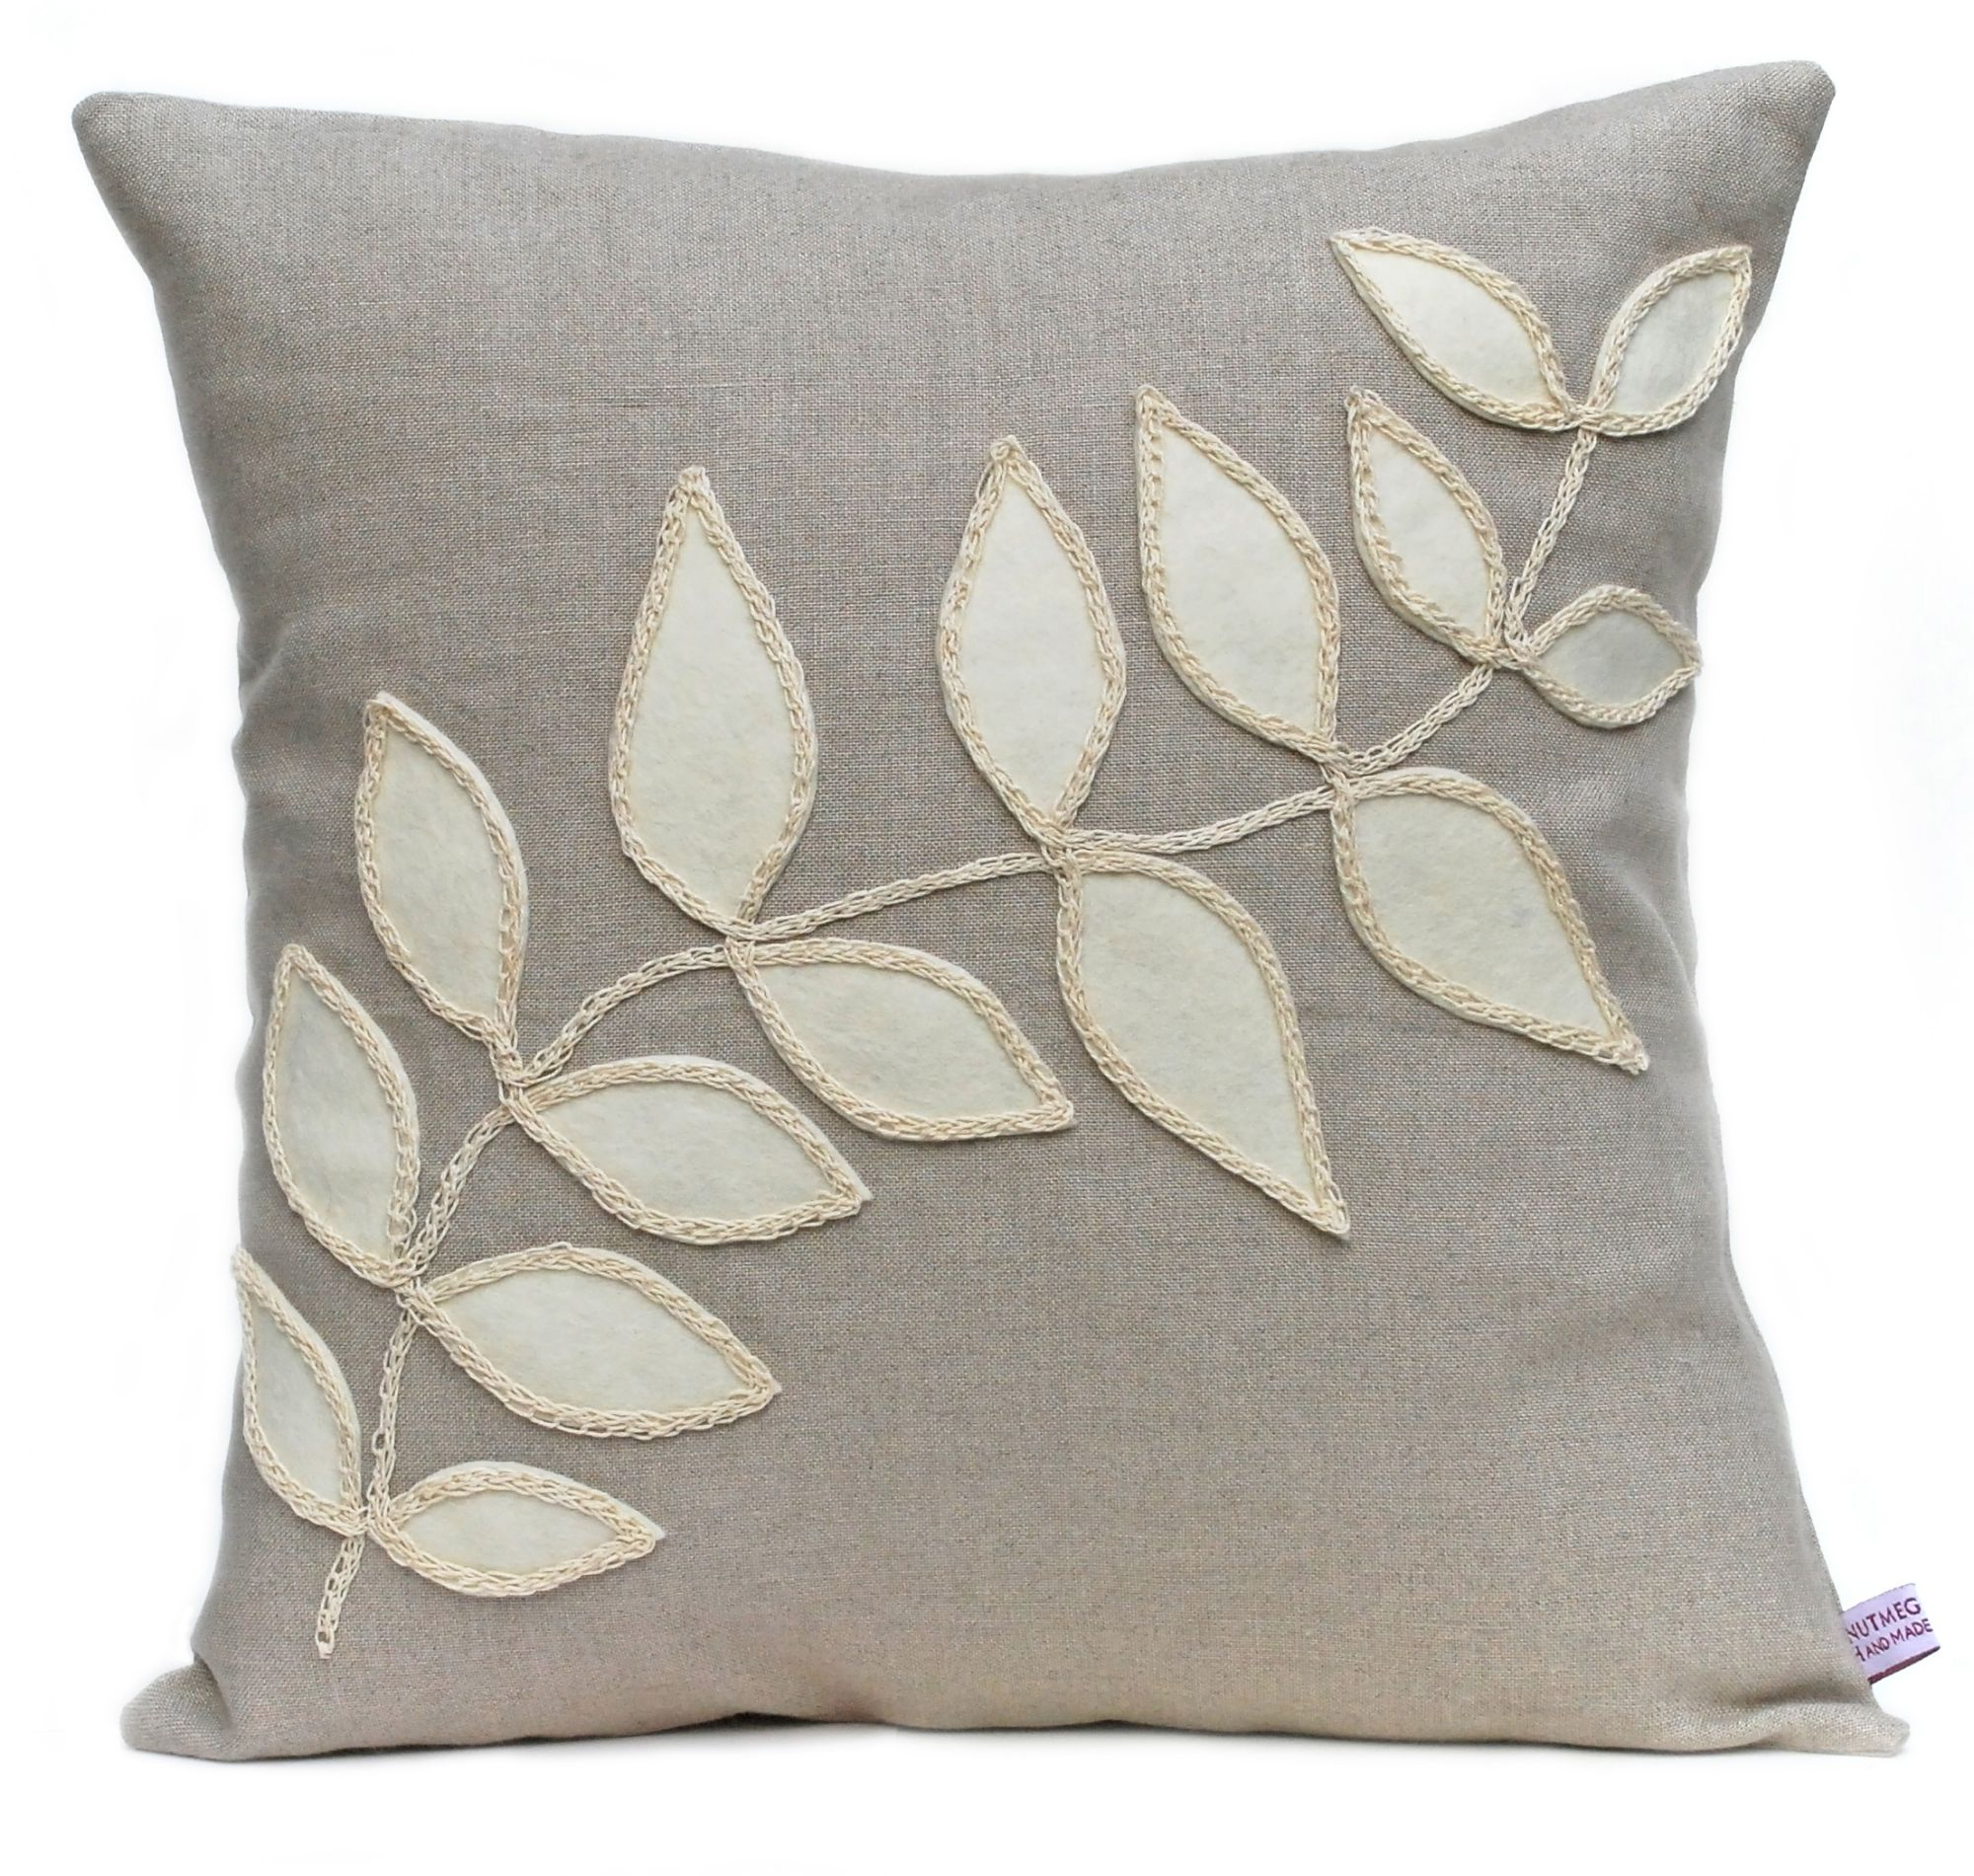 Nutmeg and Sage bespoke and handmade to order accent cushions